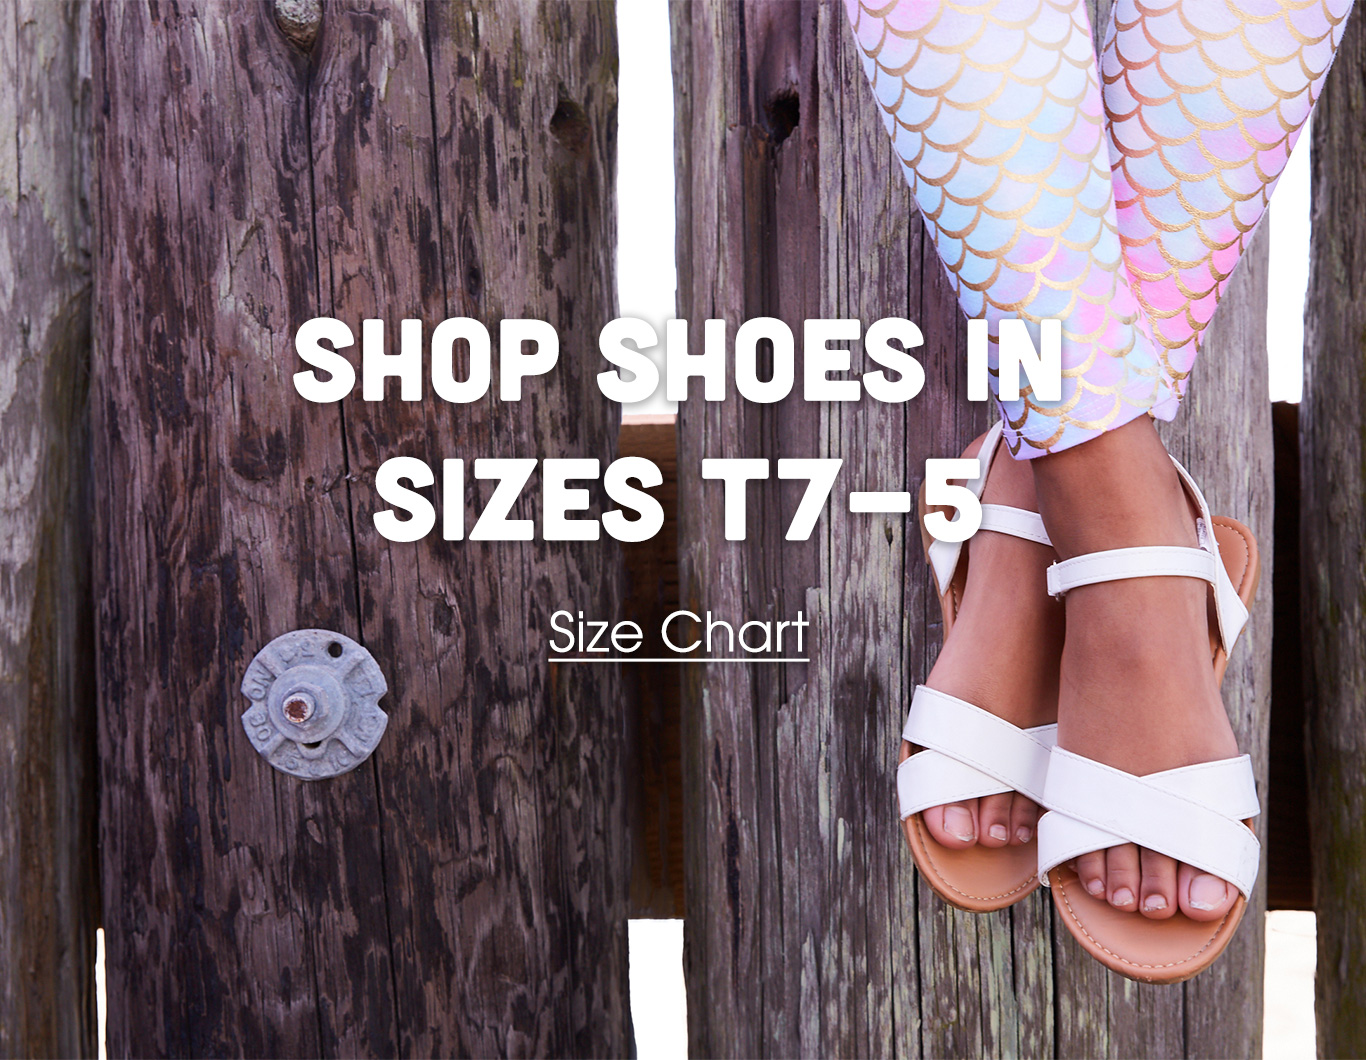 Shop Shoes in Sizes T7-5